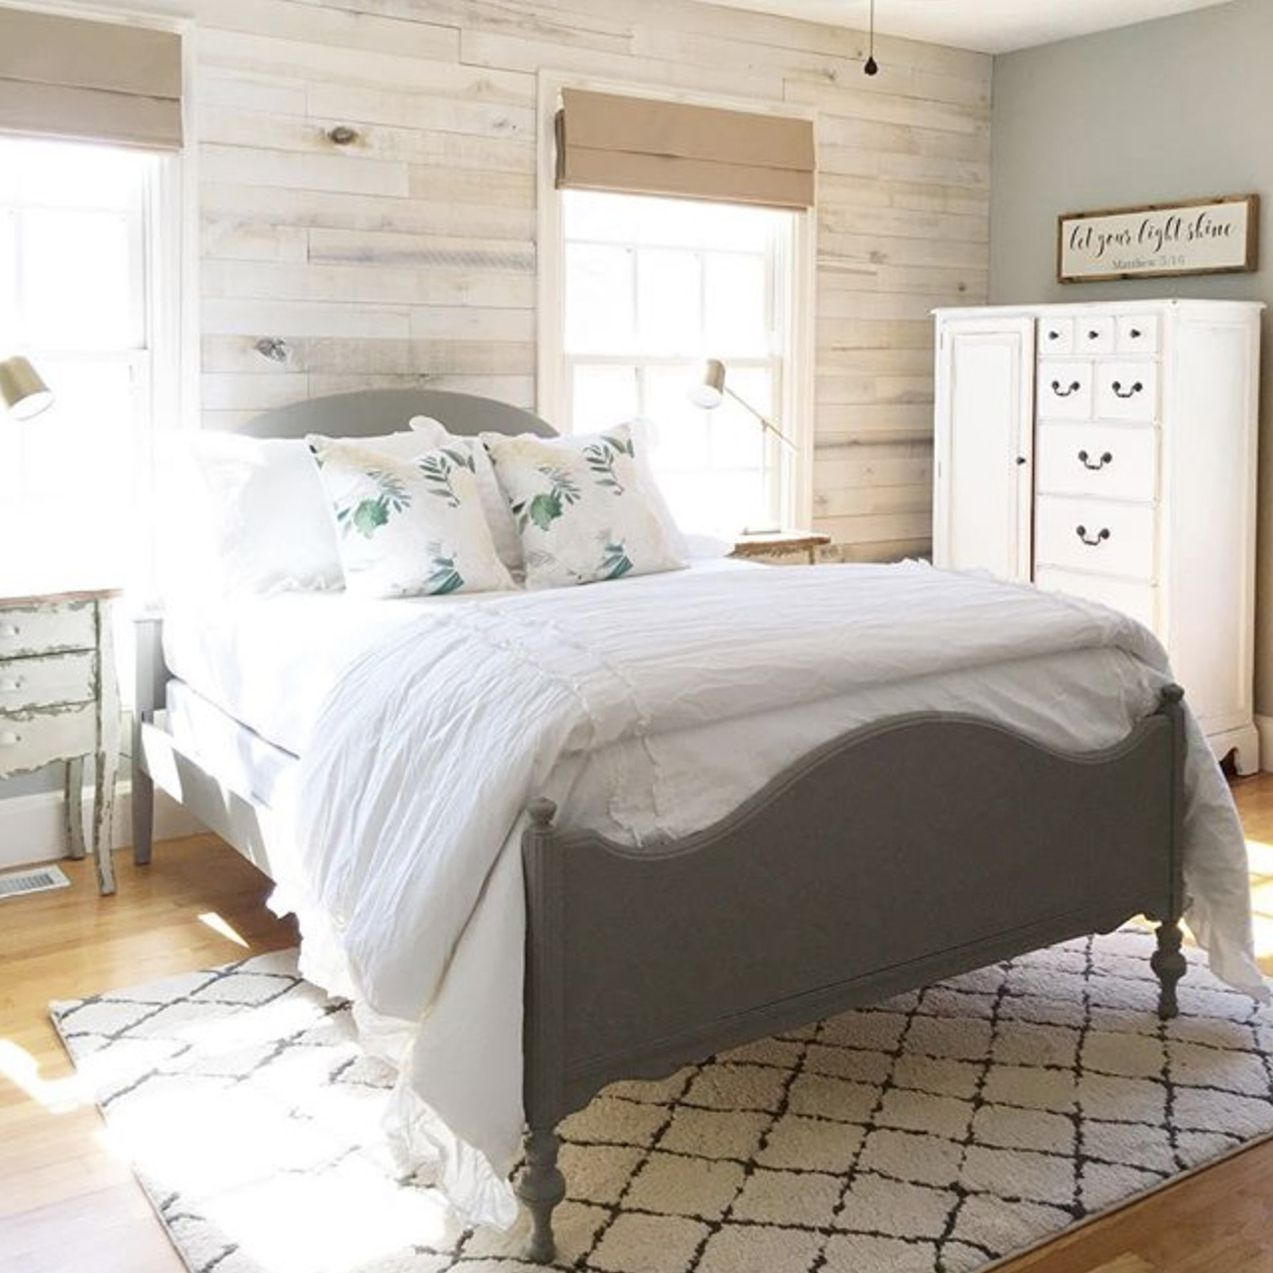 Accent Wall Good Or Bad: White Washed Wall Boards Bedroom Accent Wall By Angela